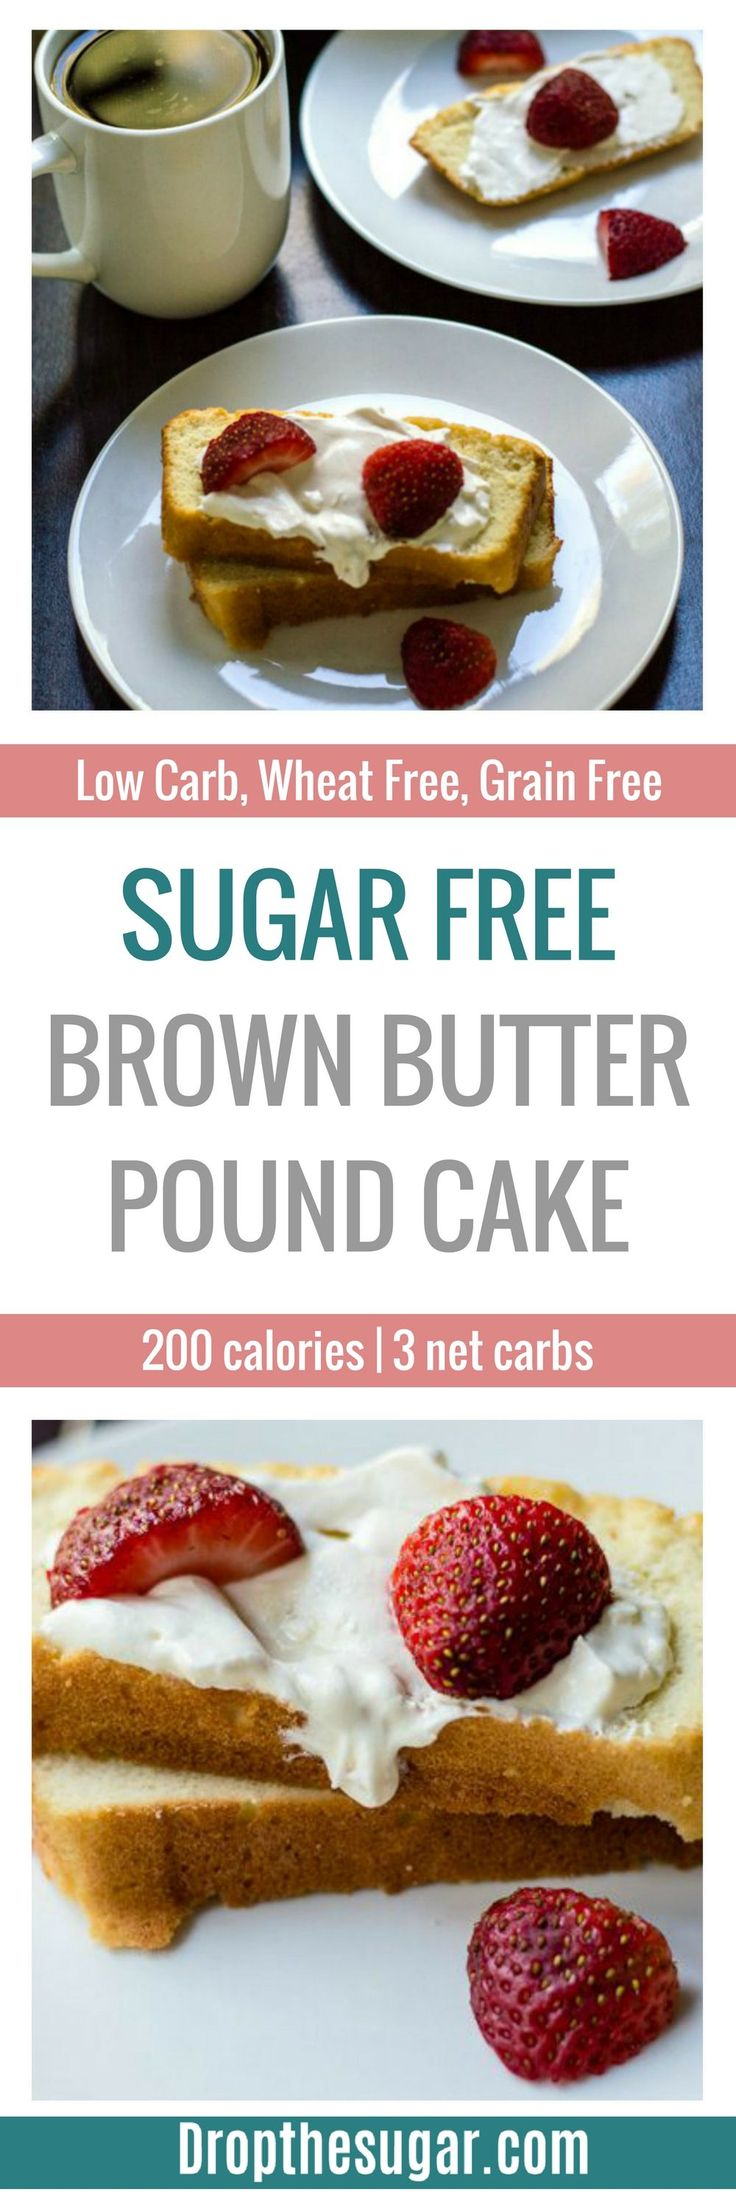 sugar free brown butter pound cake a low carb pound cake made using coconut flour as the base. Black Bedroom Furniture Sets. Home Design Ideas